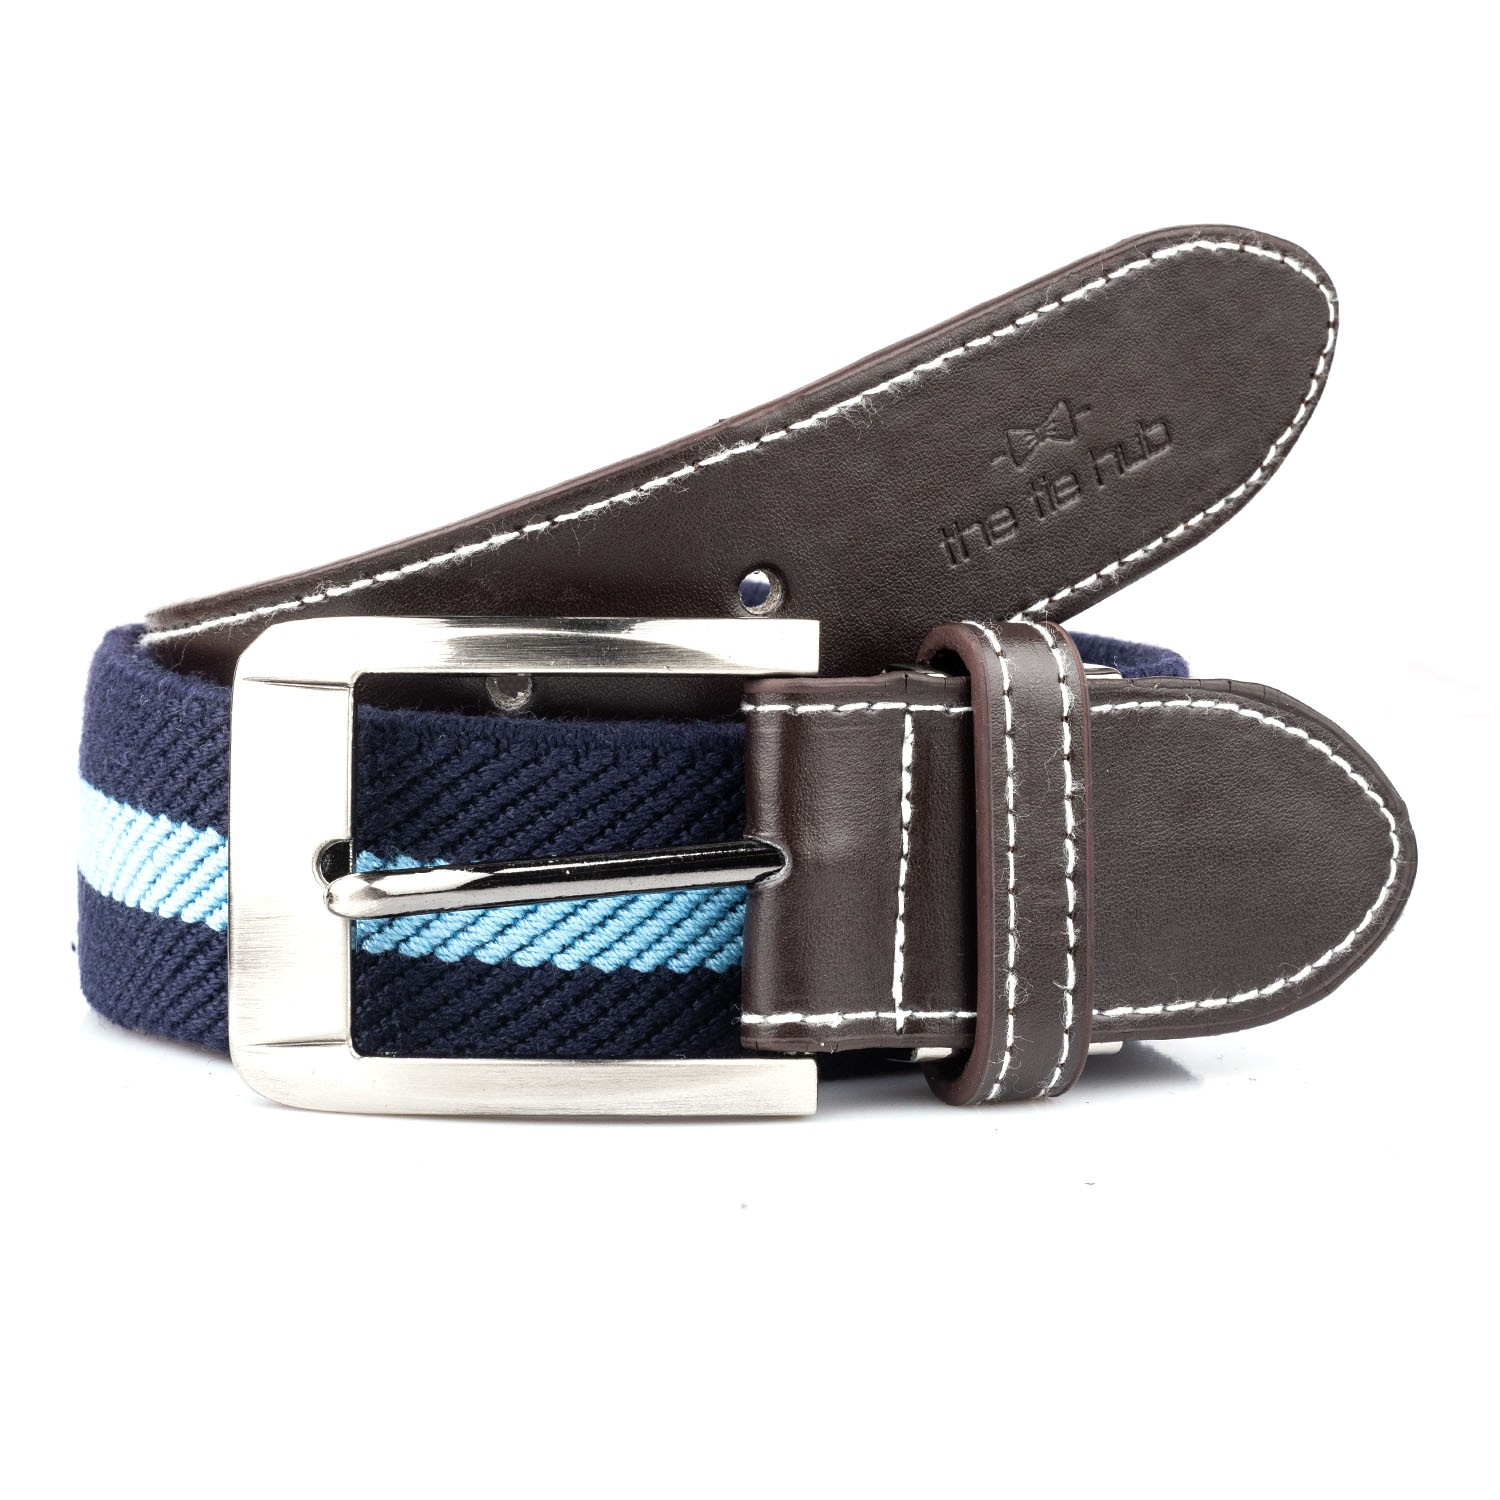 Blue Woven Elasticated Belt With Metal Buckle